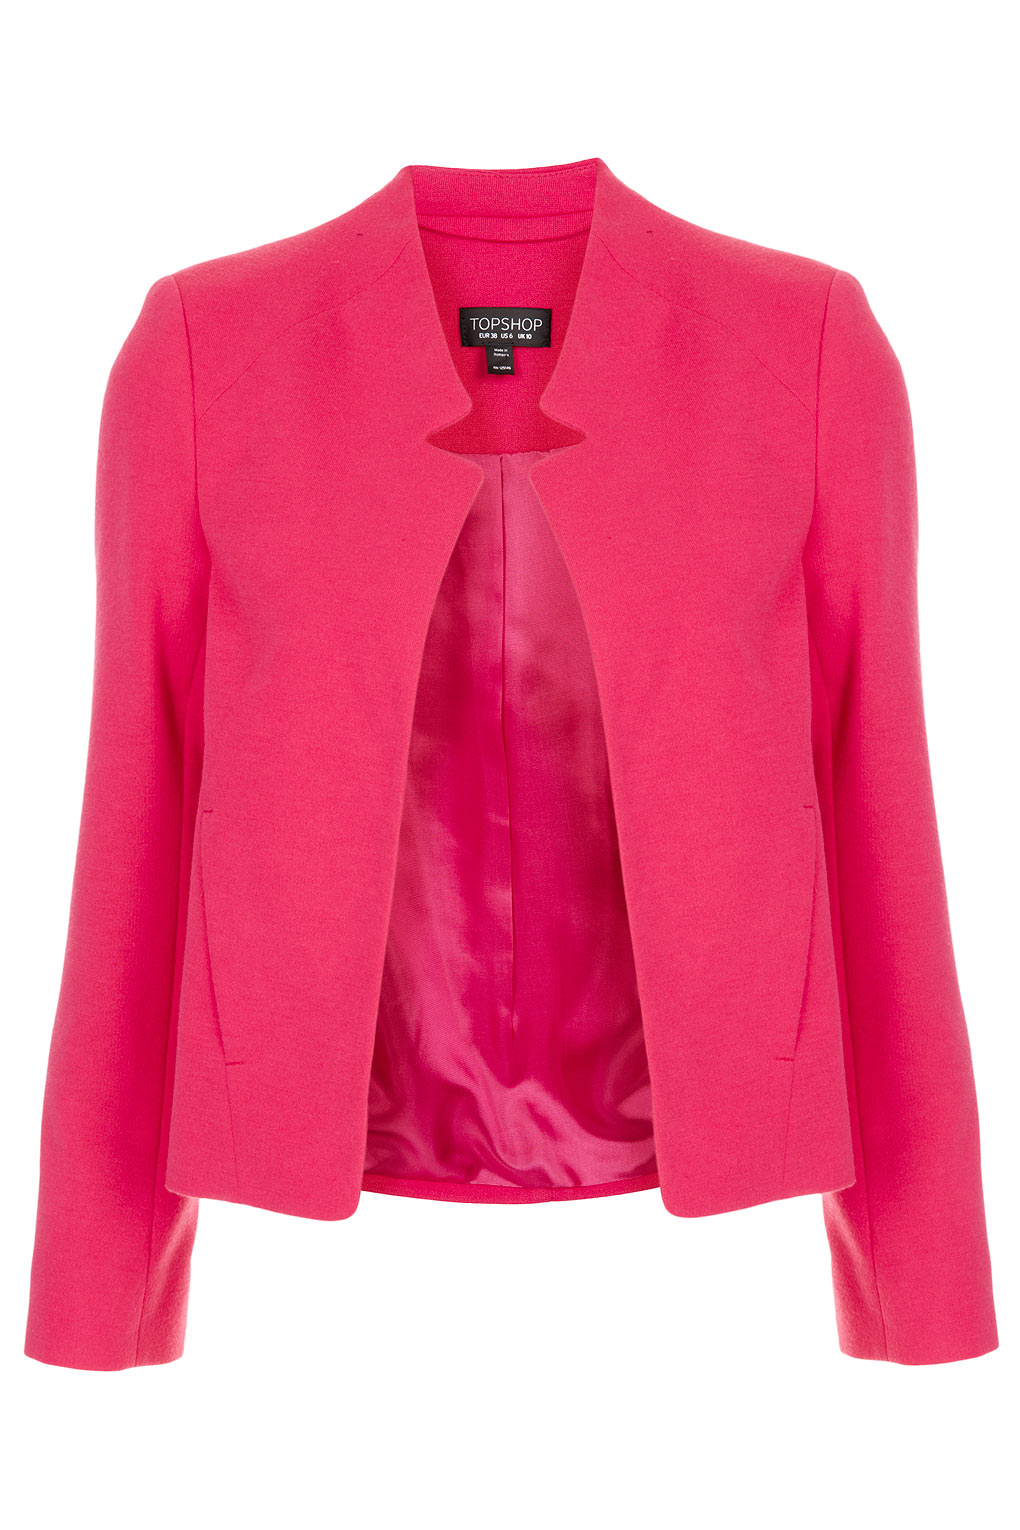 Topshop Ponte Notch Neck Jacket in Pink | Lyst